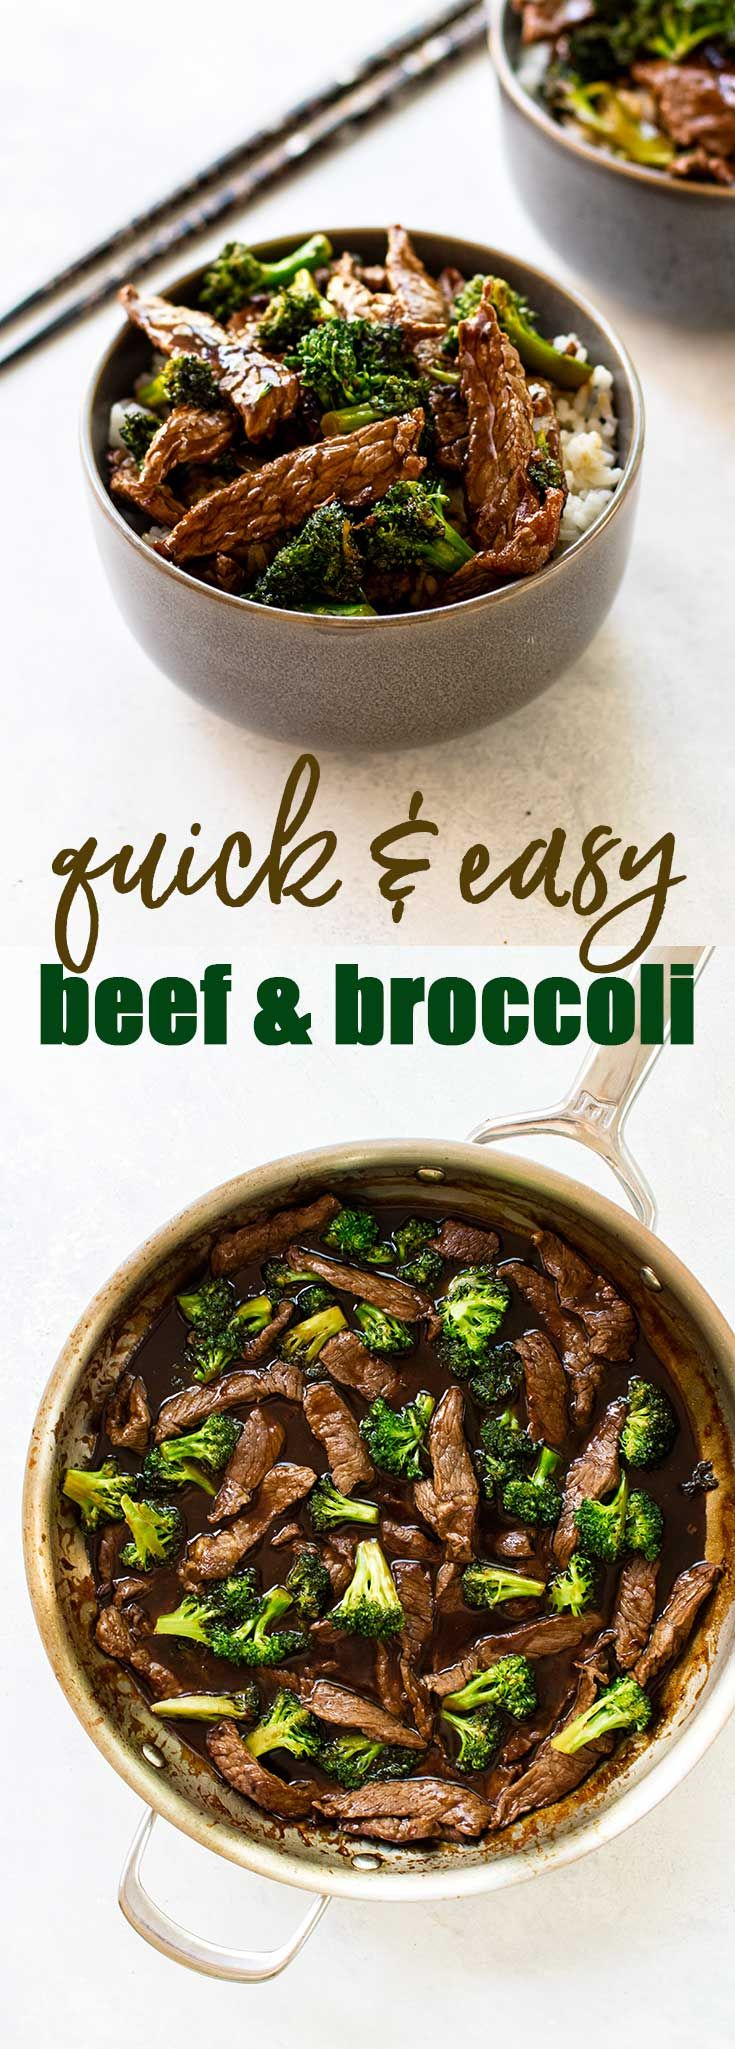 Photo of 30-Minute Beef and Broccoli